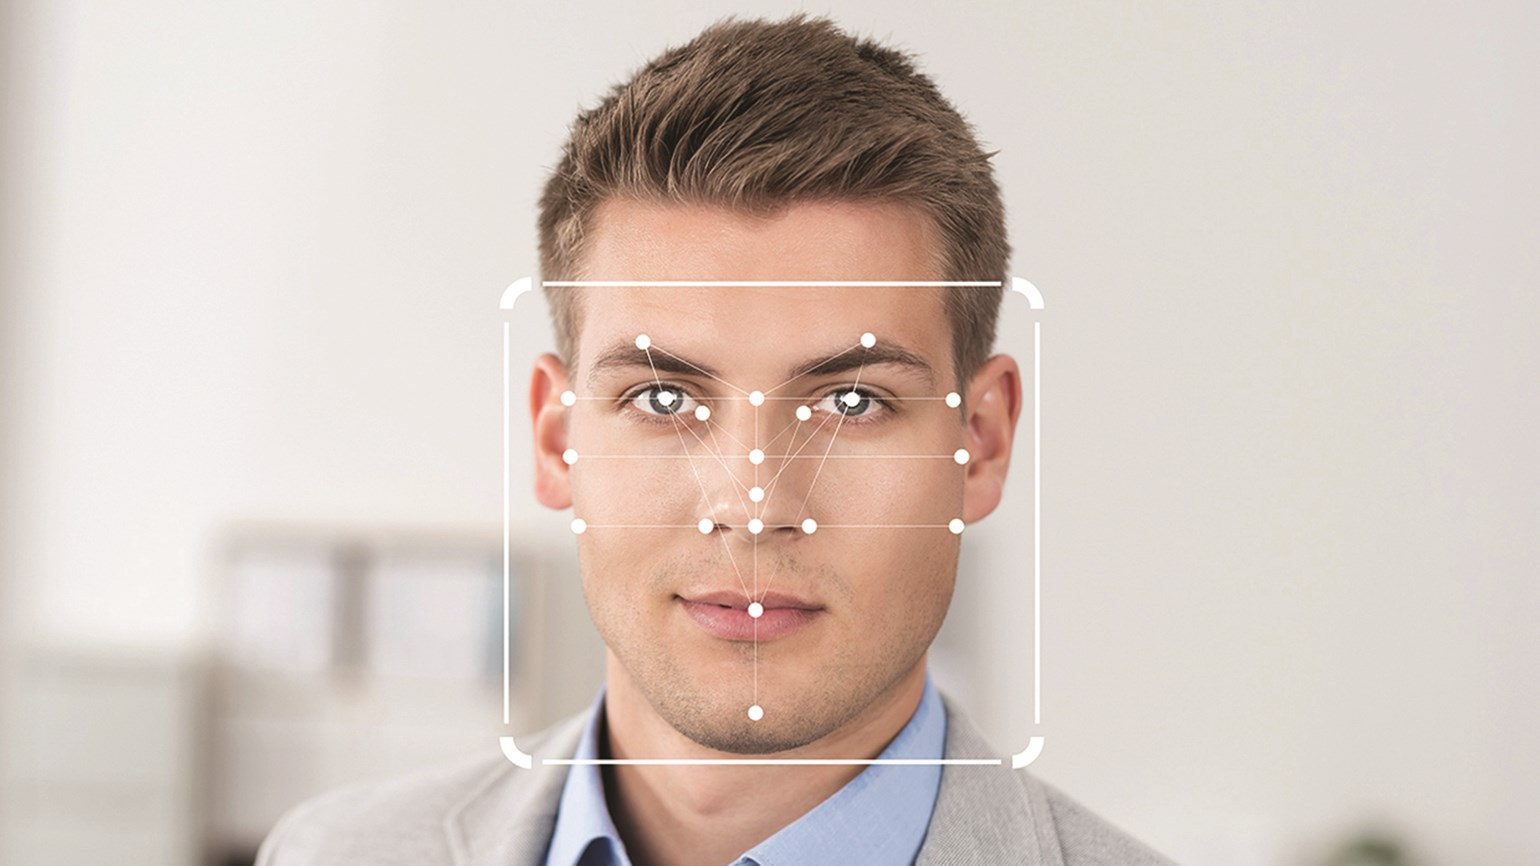 Biometrics: Facial recognition tech coming to an airport near you